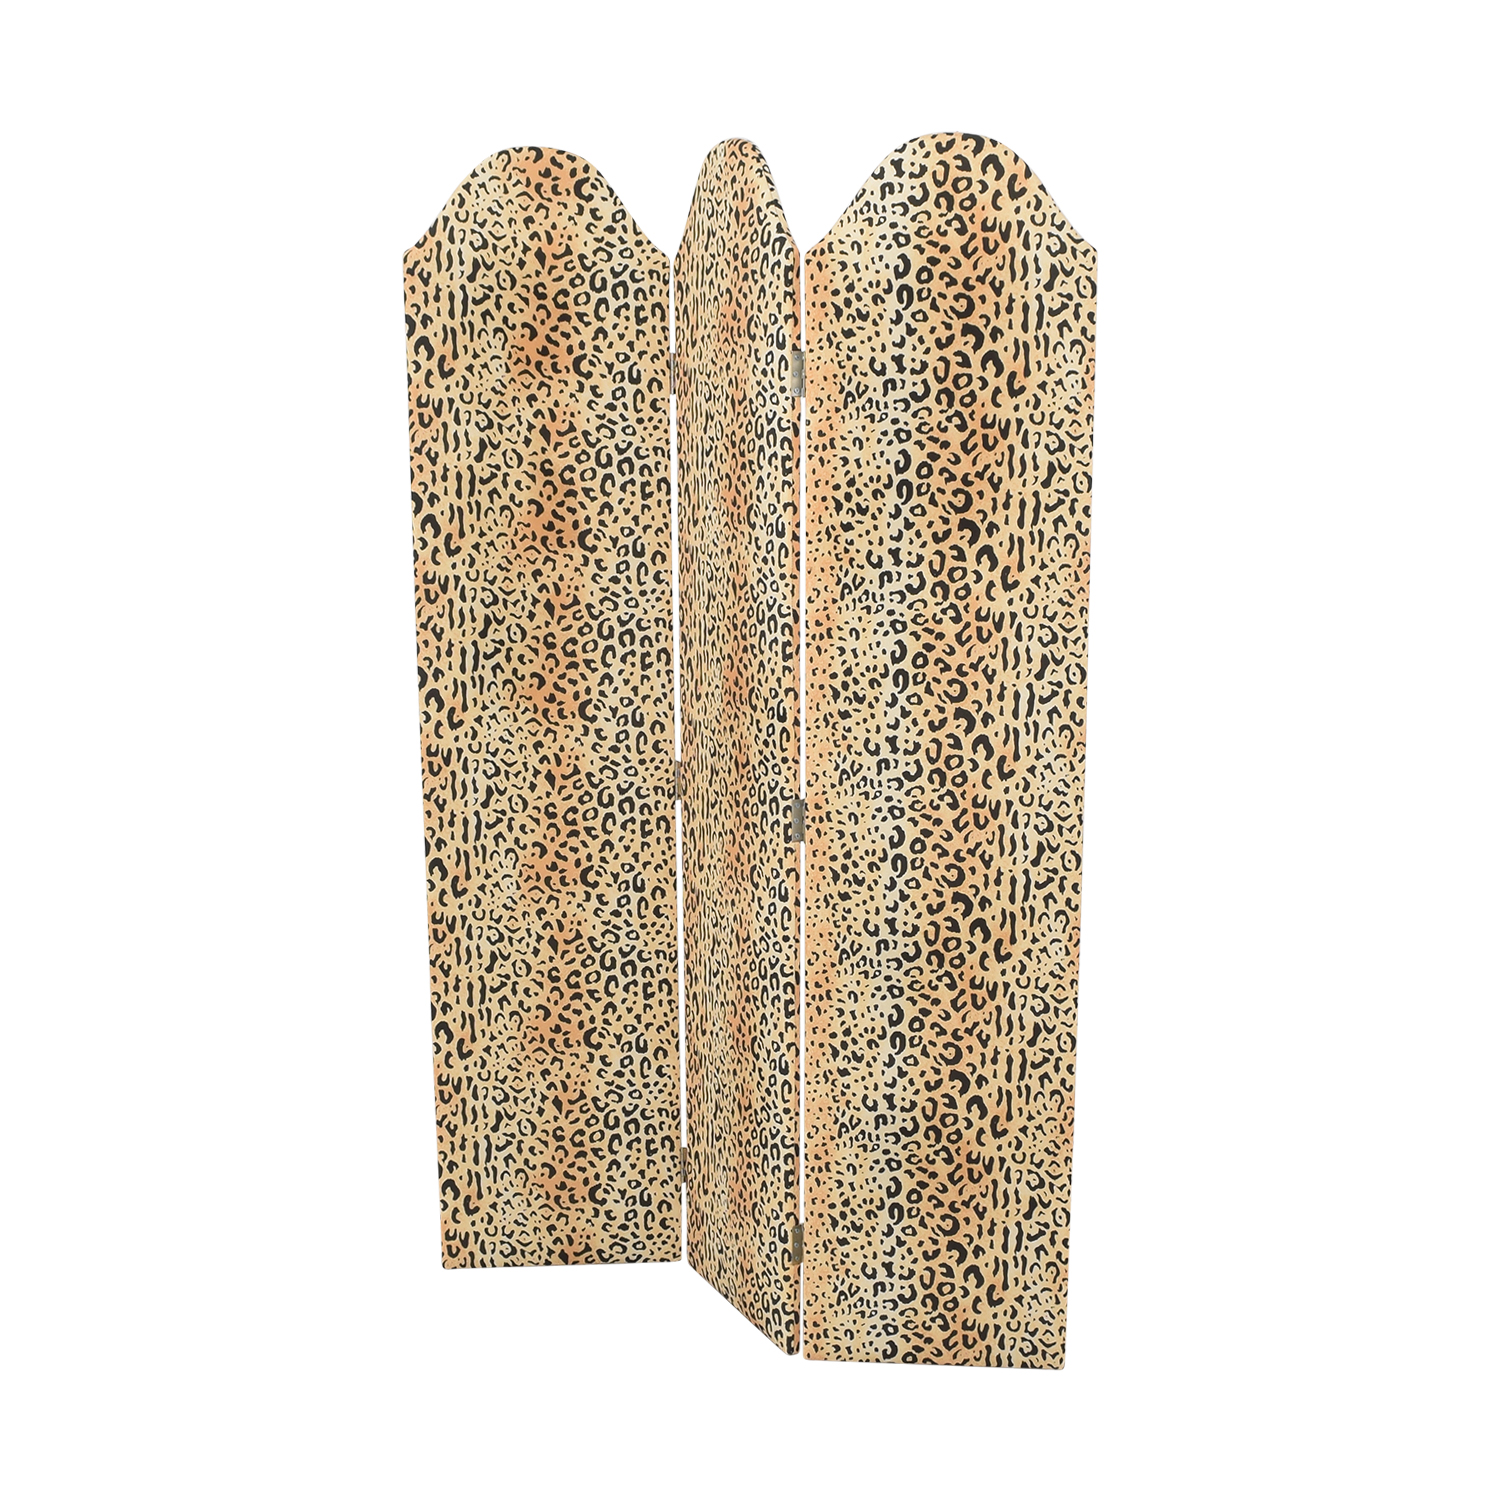 The Inside The Inside Scalloped Screen Leopard Print Divider for sale